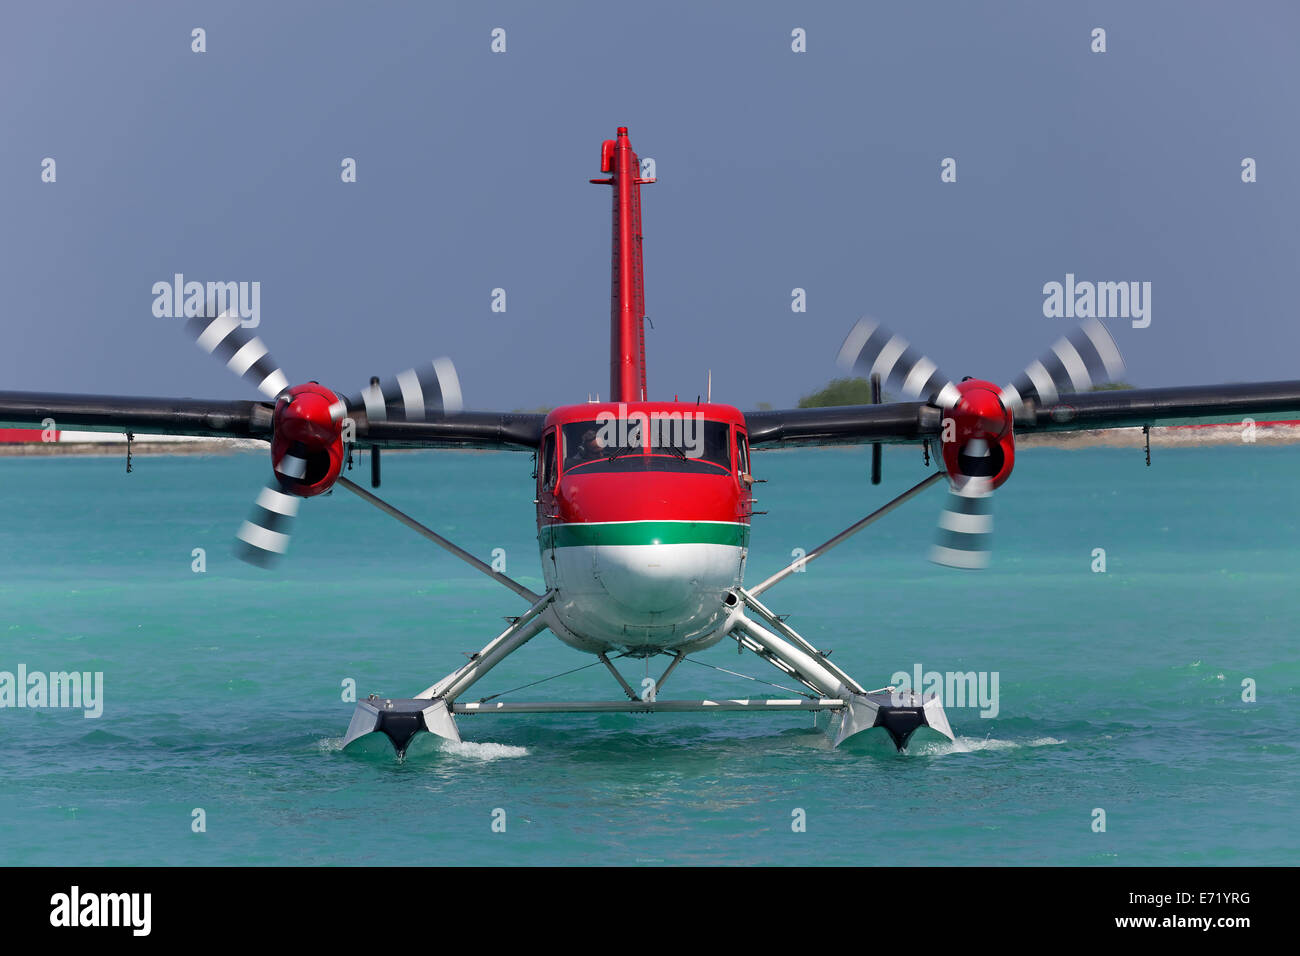 Hydroplane, De Havilland Canada DHC-6 Twin Otter, frontal view, on water, Maldives - Stock Image